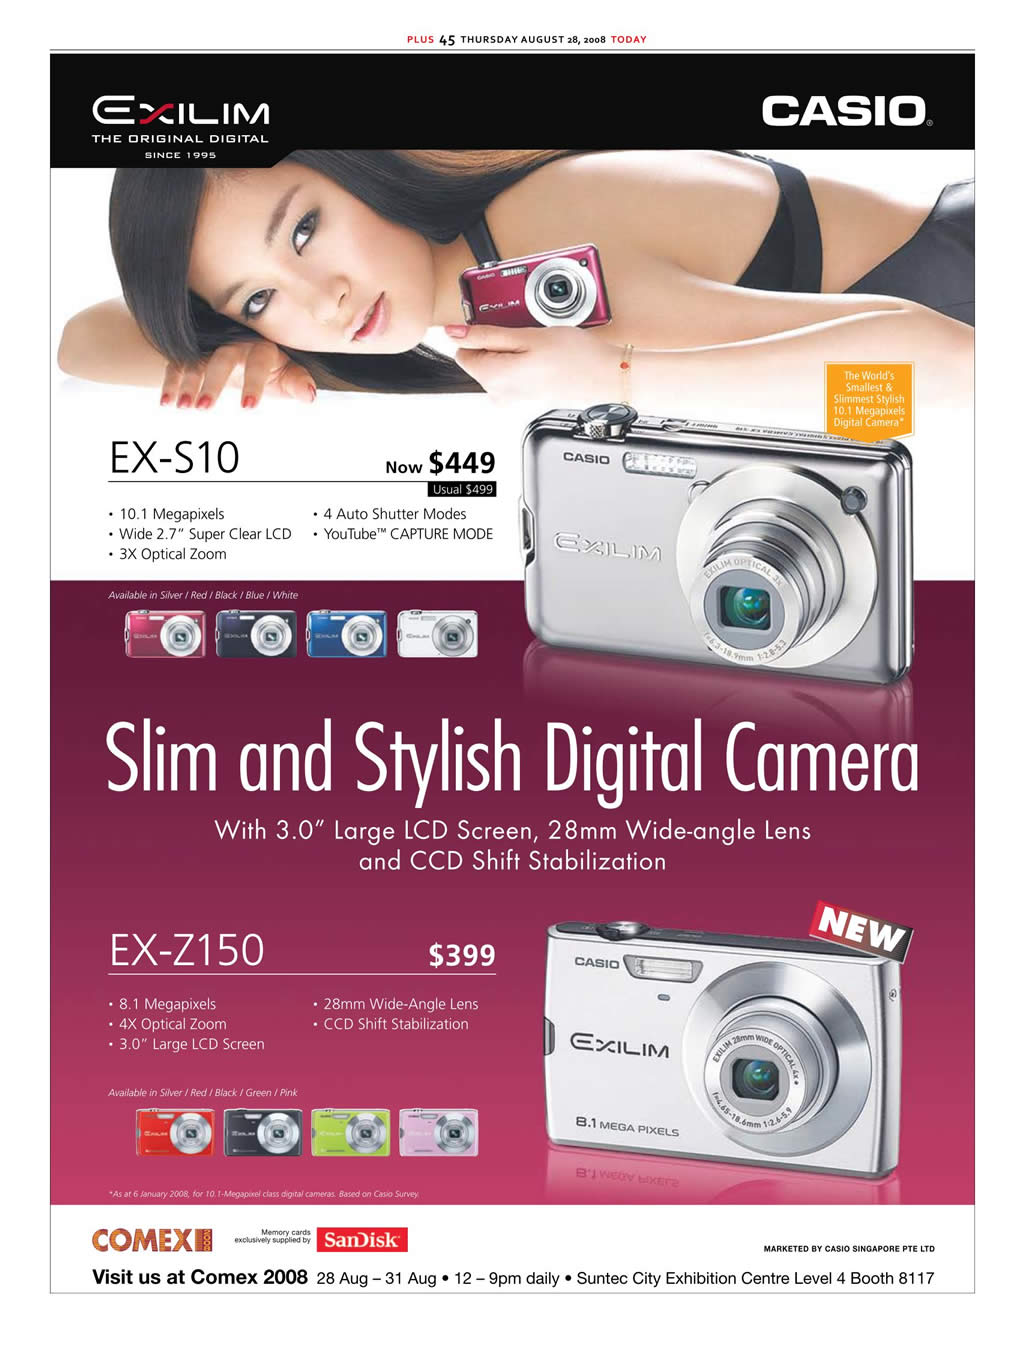 Comex 2008 price list image brochure of Casio Exilim Camera